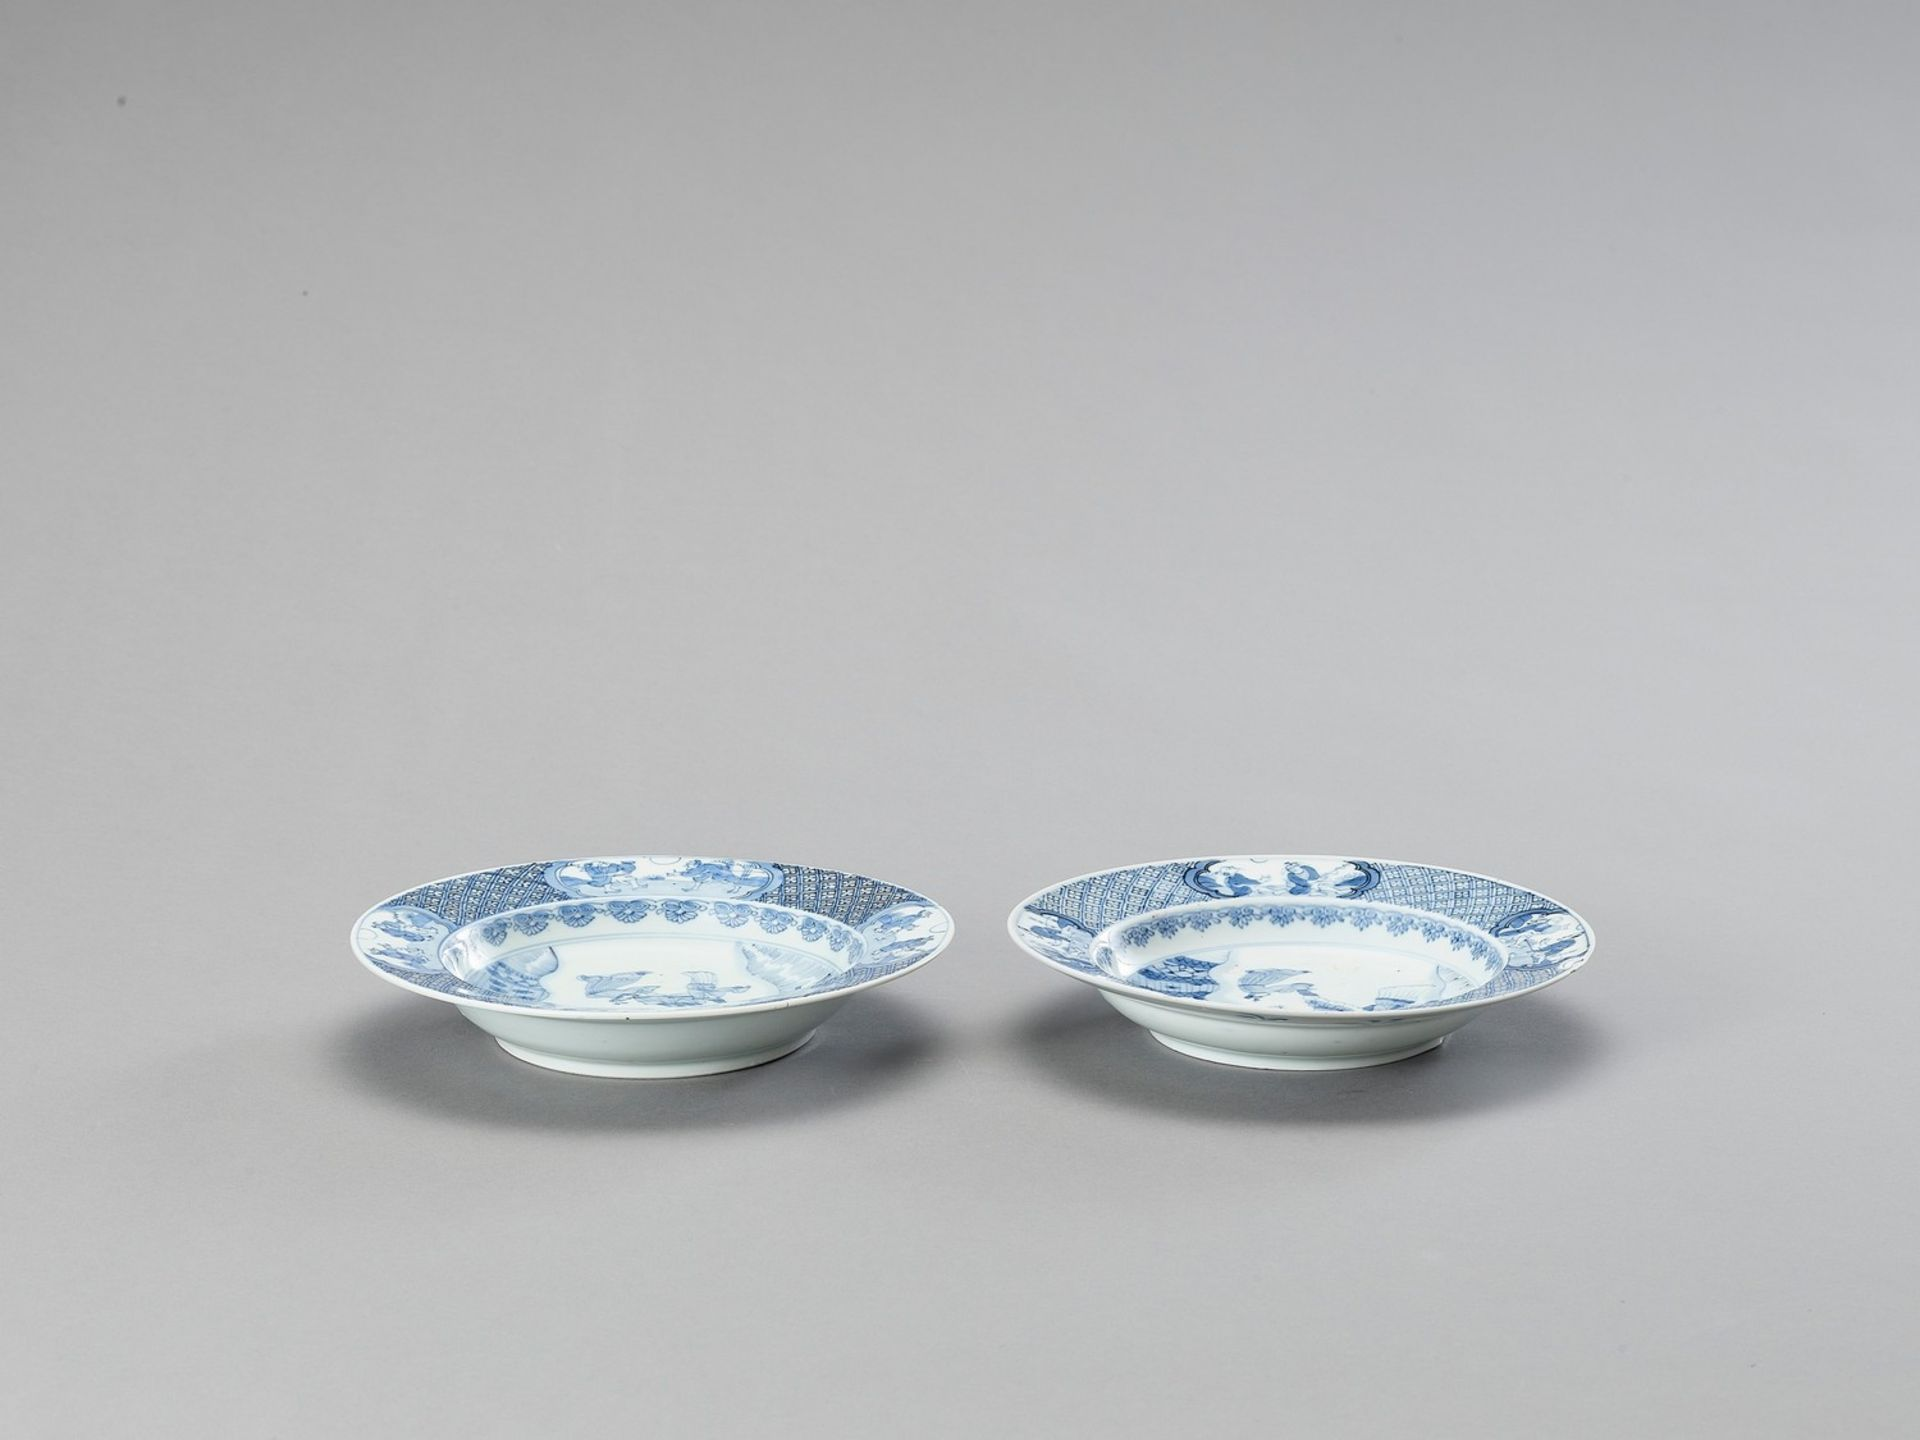 A PAIR OF BLUE AND WHITE PORCELAIN DISHES - Bild 4 aus 4